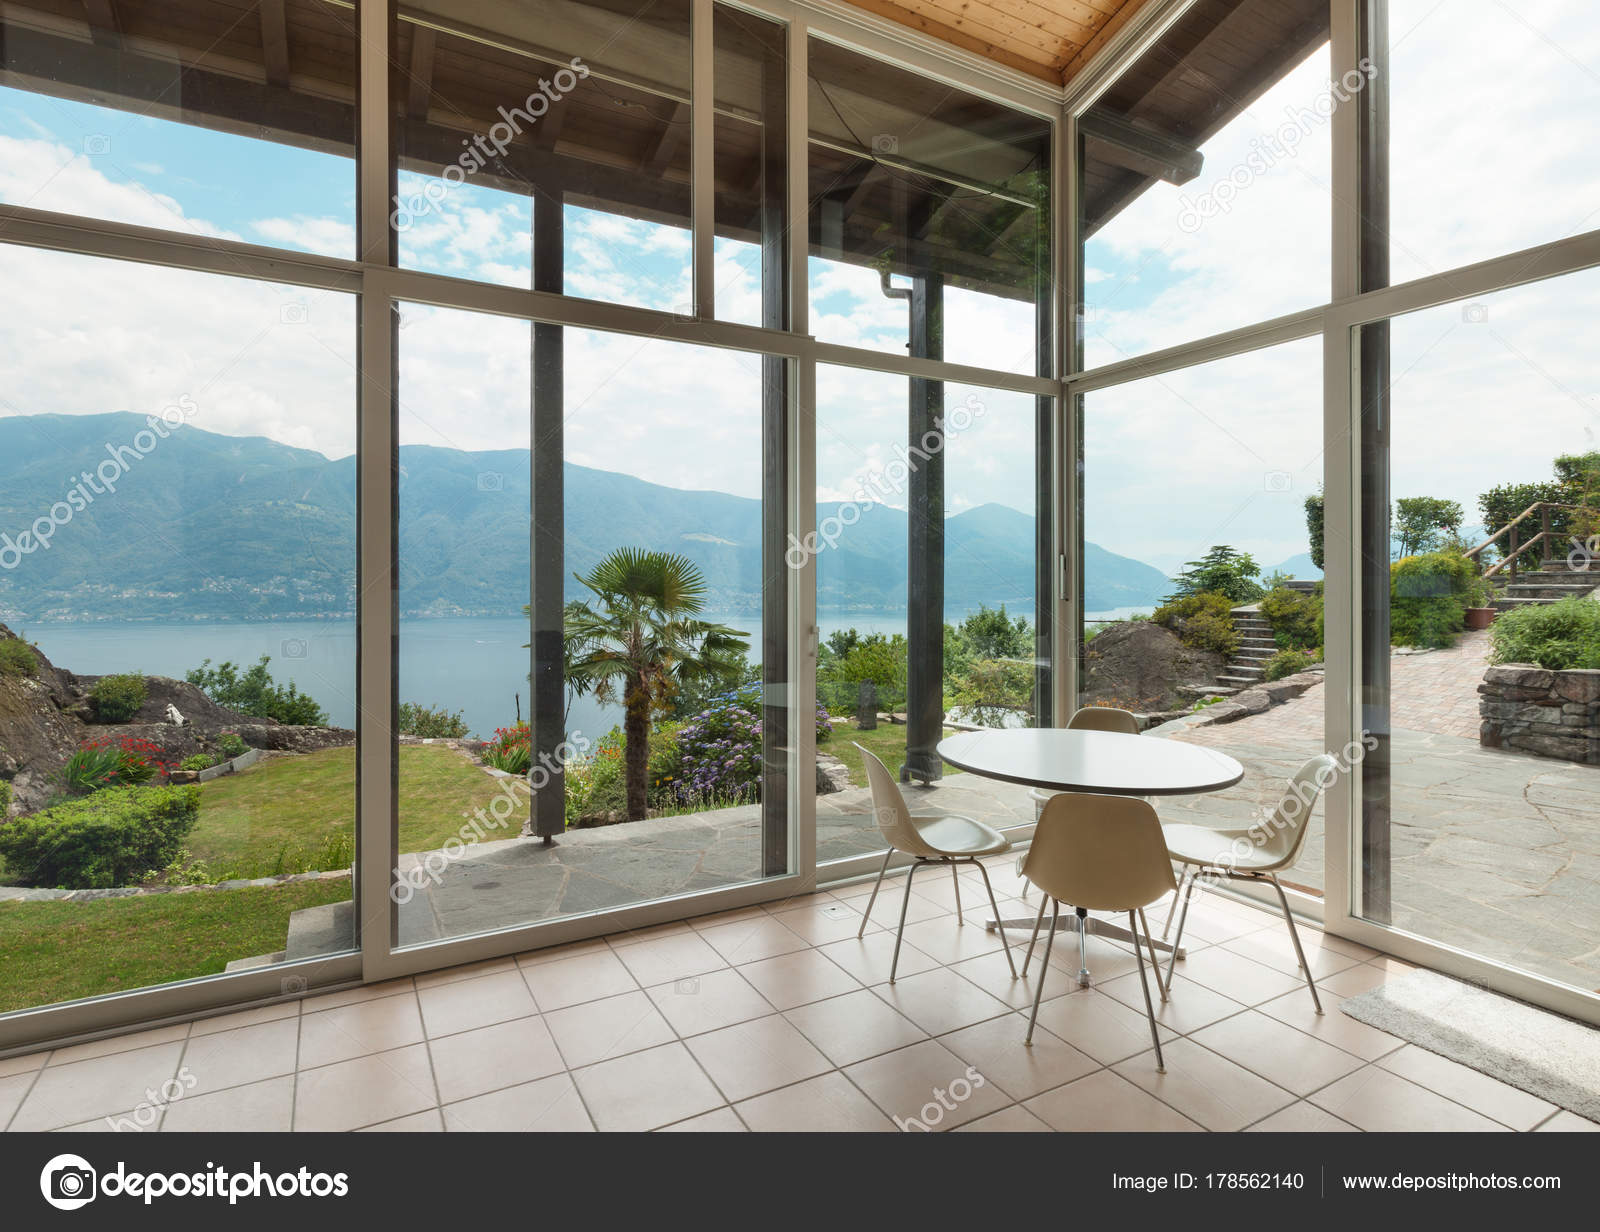 https://st3.depositphotos.com/2018053/17856/i/1600/depositphotos_178562140-stock-photo-modern-architecture-interior-veranda.jpg